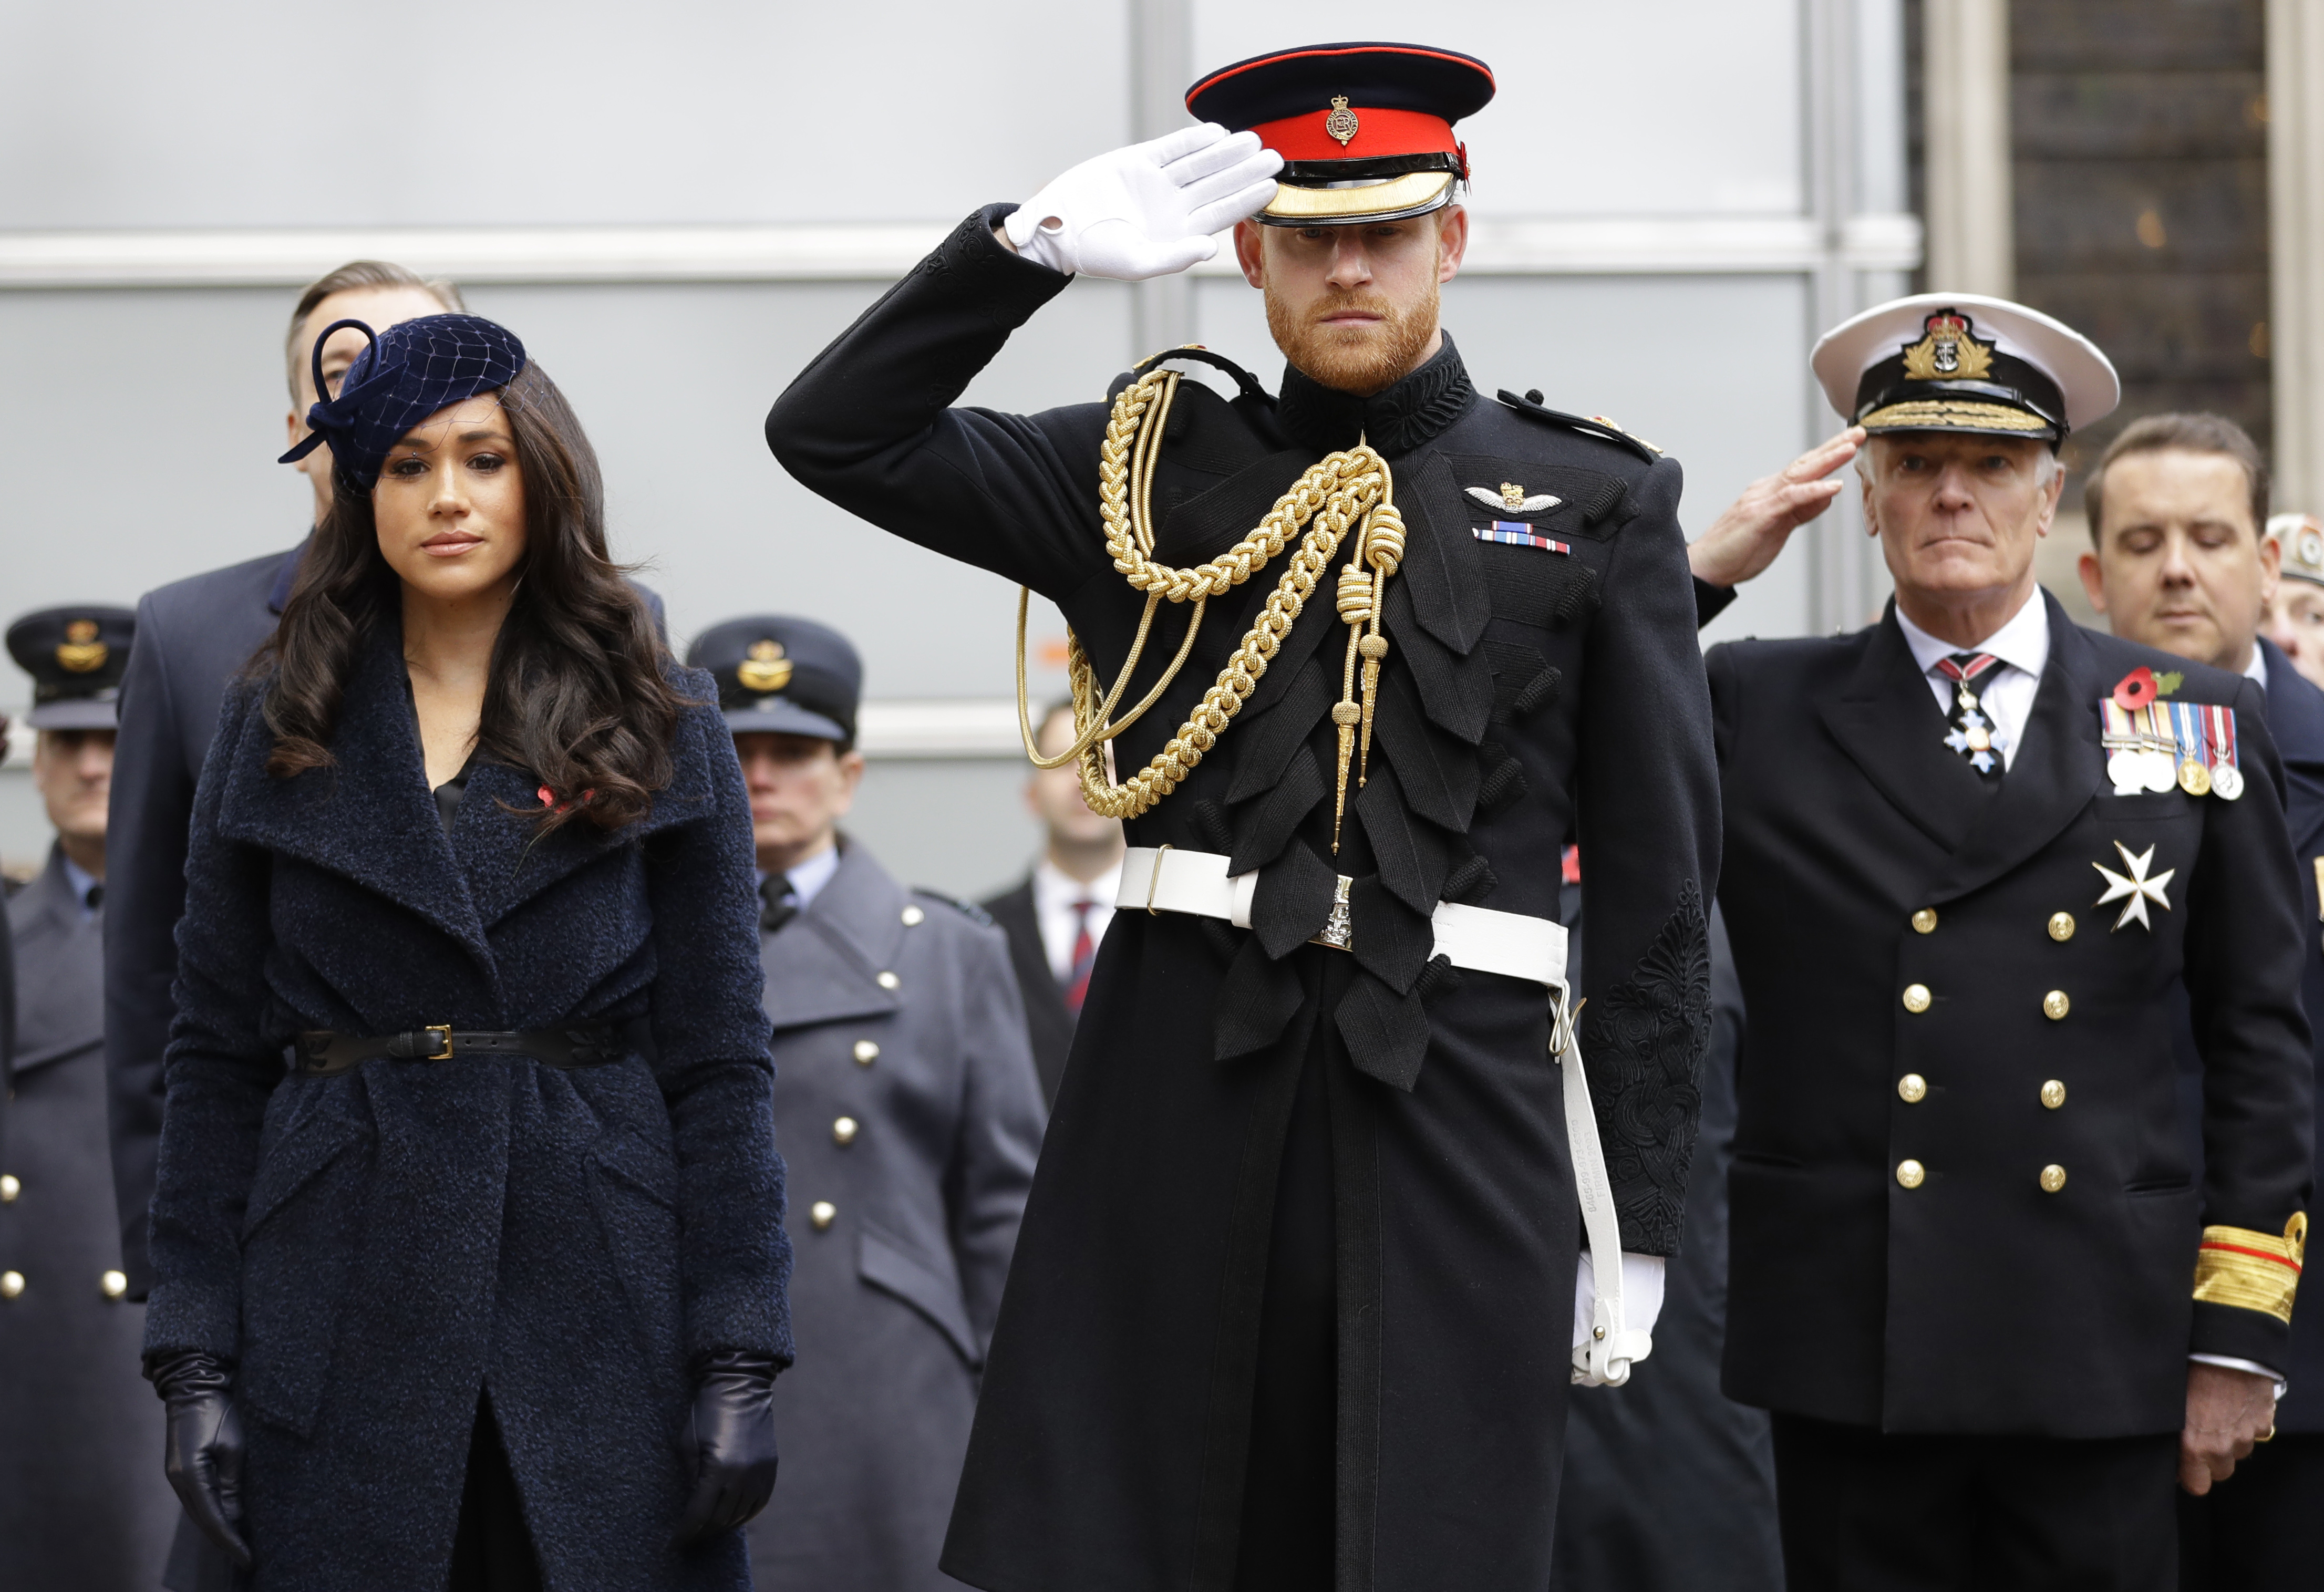 Britain's Prince Harry, Duke of Sussex and his wife Meghan, Duchess of Sussex pay their respects after laying a Cross of Remembrance in front of wooden crosses from the Graves of Unknown British Soldiers from the First and Second World Wars, during their visit to the Field of Remembrance at Westminster Abbey in central London on November 7, 2019. - The Field of Remembrance is organised by The Poppy Factory, and has been held in the grounds of Westminster Abbey since November 1928, when only two Remembrance Tribute Crosses were planted. In the run-up to Armistice Day, many Britons wear a paper red poppy -- symbolising the poppies which grew on French and Belgian battlefields during World War I -- in their lapels. (Photo by Kirsty Wigglesworth / POOL / AFP) (Photo by KIRSTY WIGGLESWORTH/POOL/AFP via Getty Images)